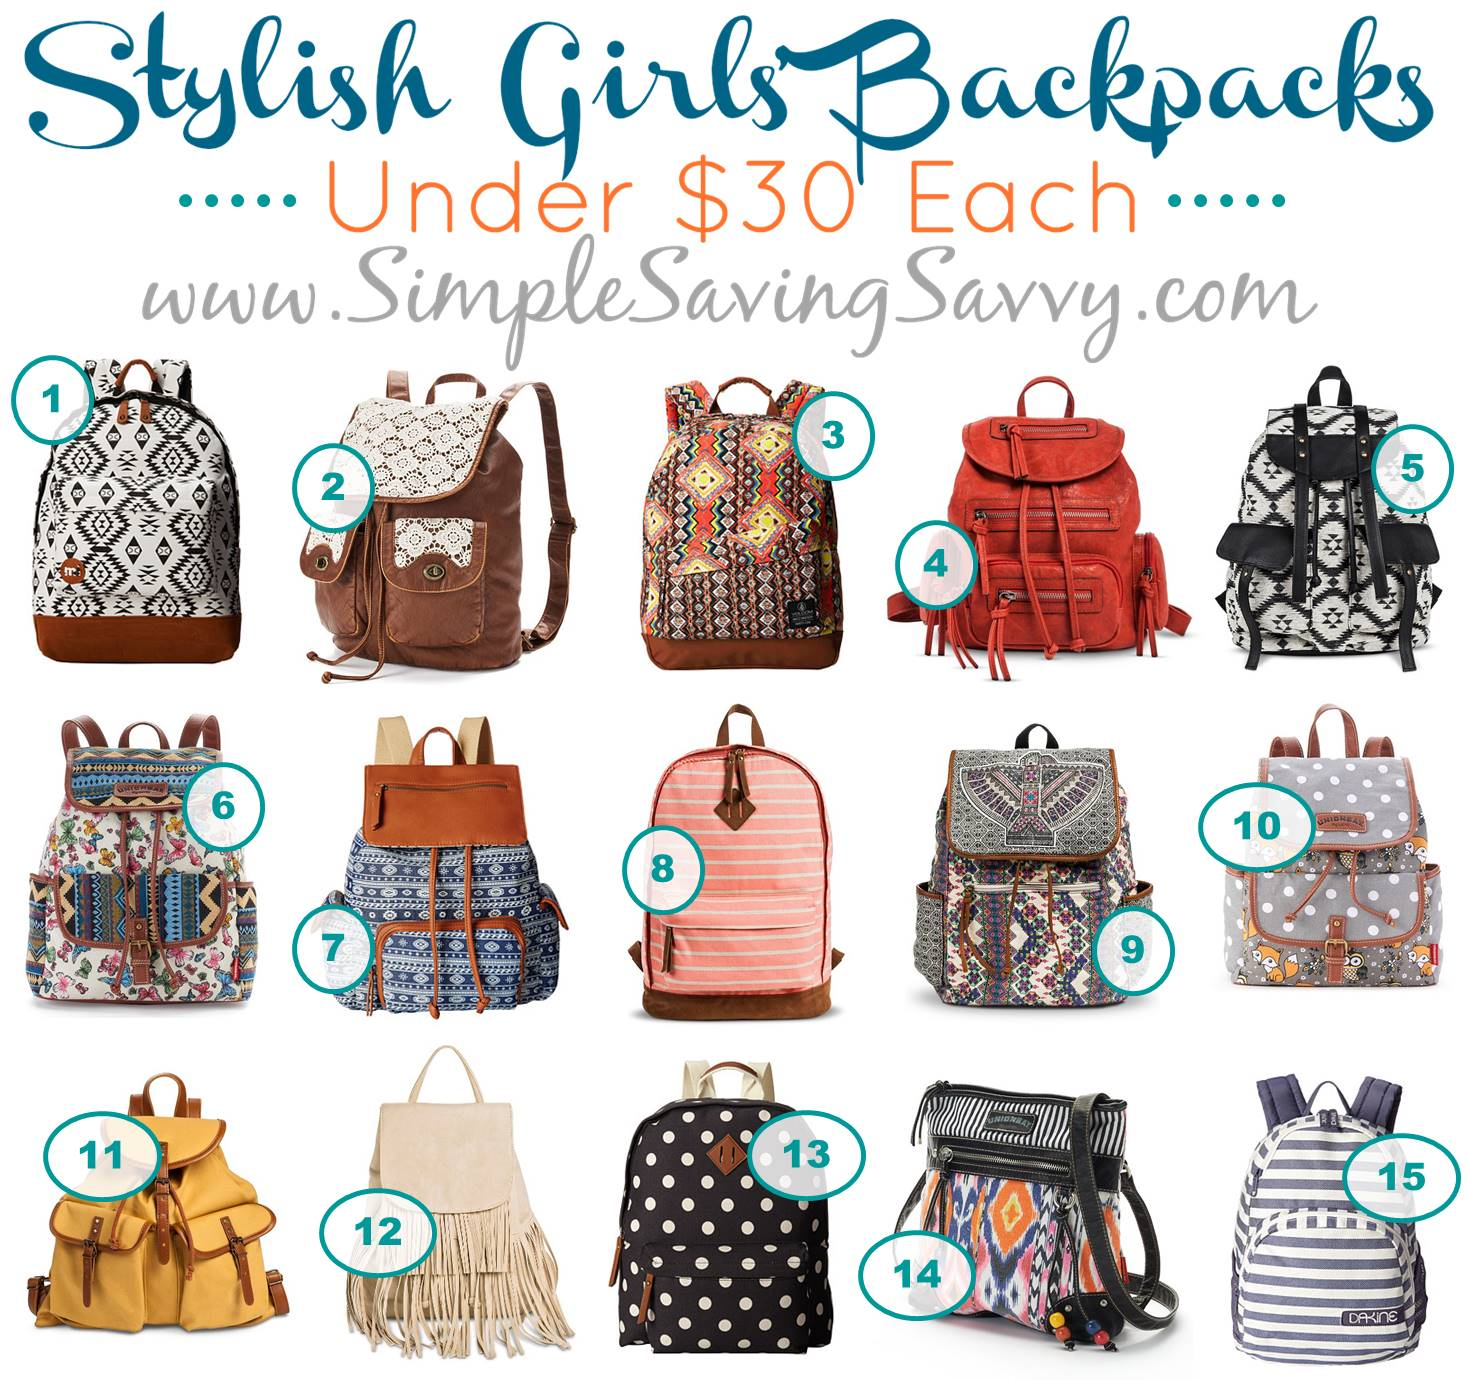 Backpacks For Girls Cheap wG3V29J5